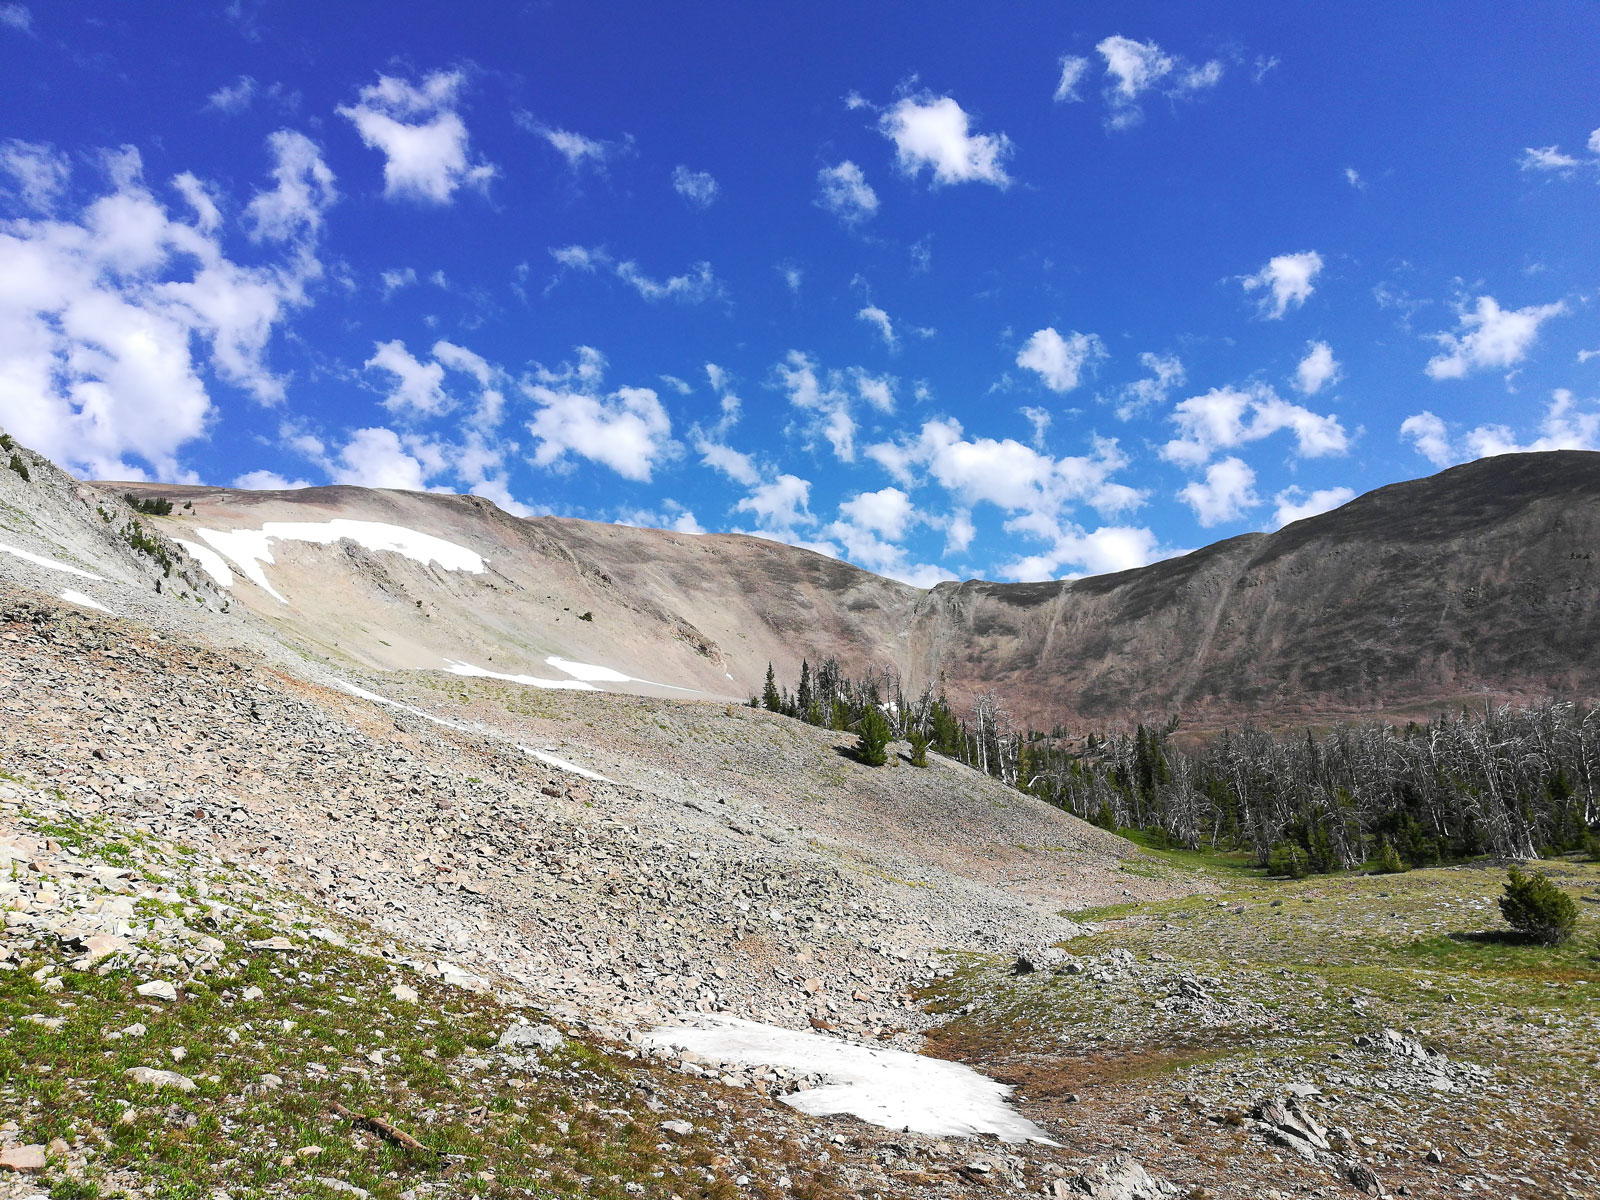 Tree line on the trail to Avalanche Peak in Wyoming's Yellowstone National Park